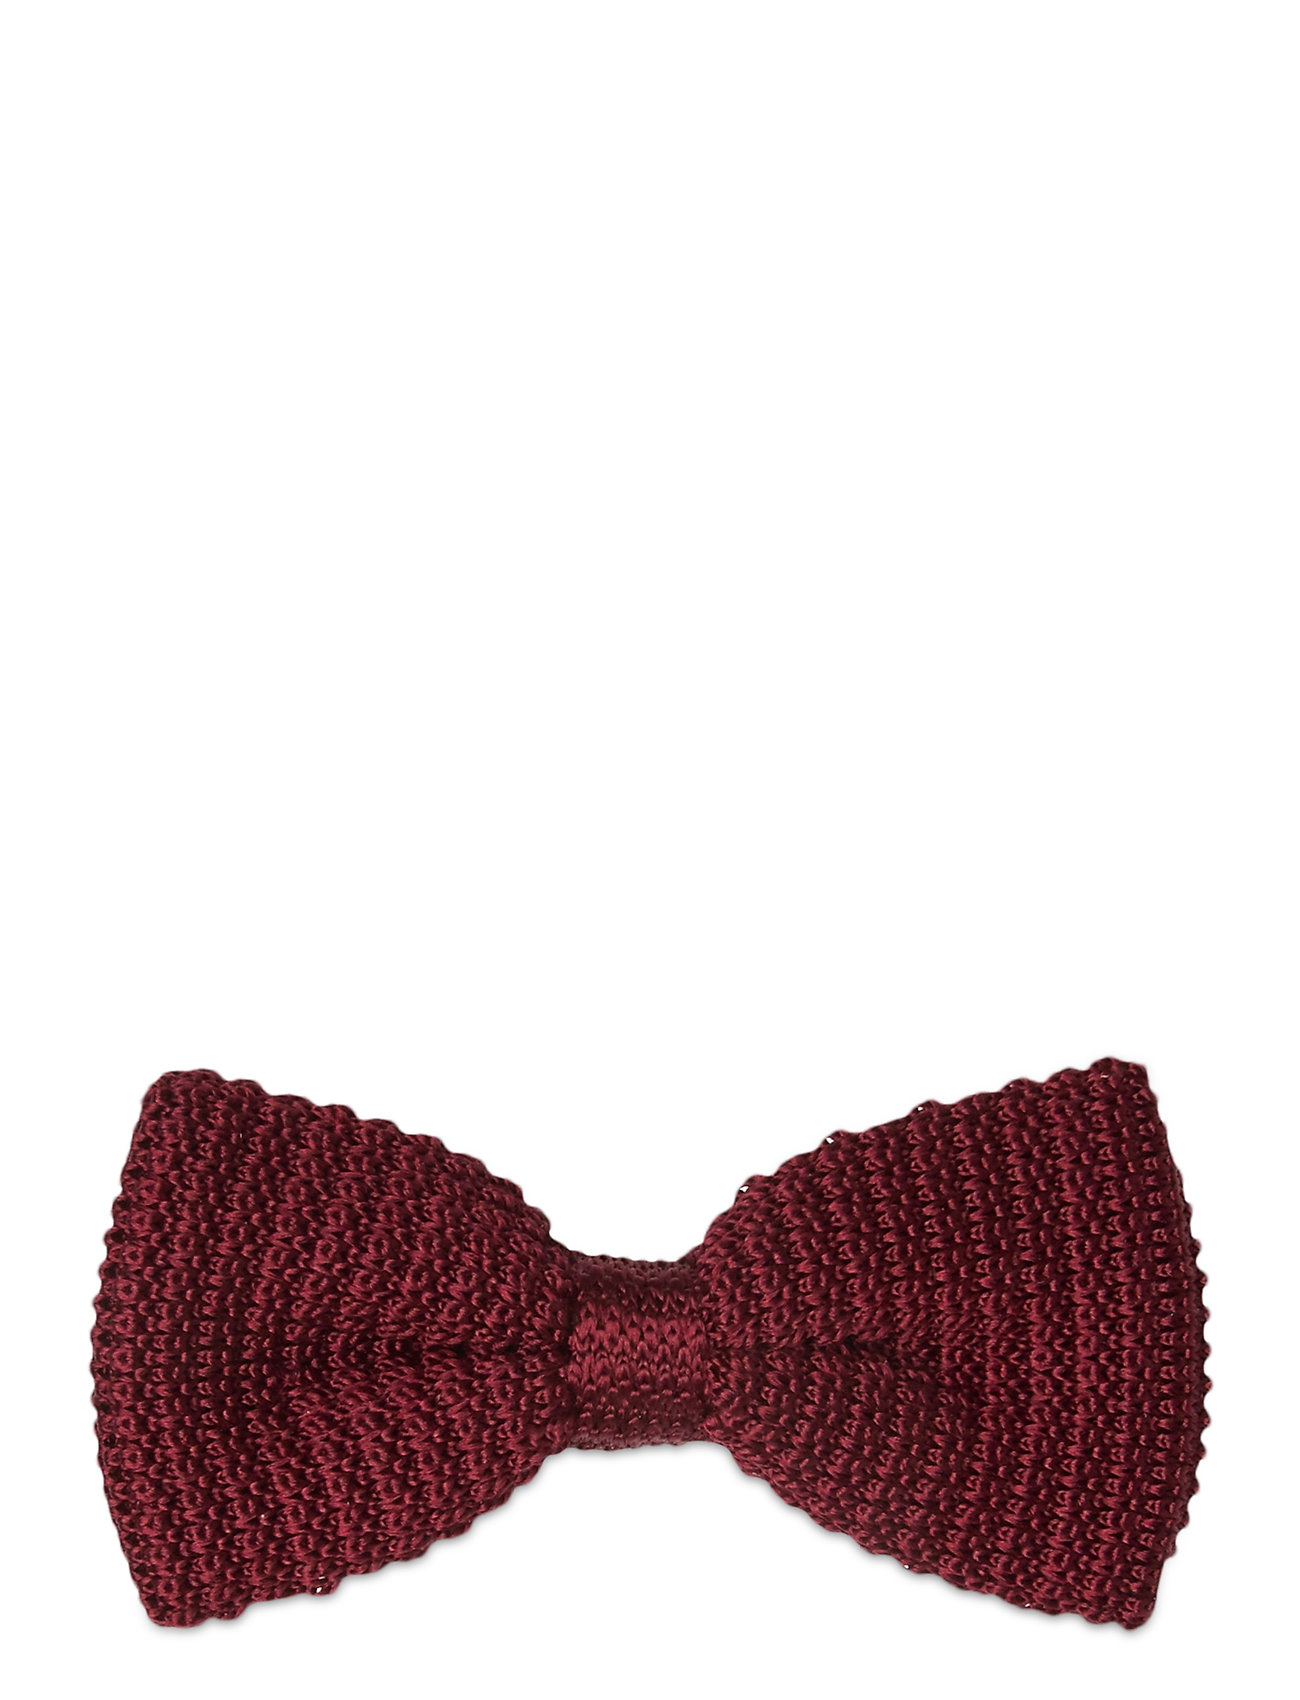 Image of Knitted Bow Tie Butterfly Rød Amanda Christensen (3474794125)